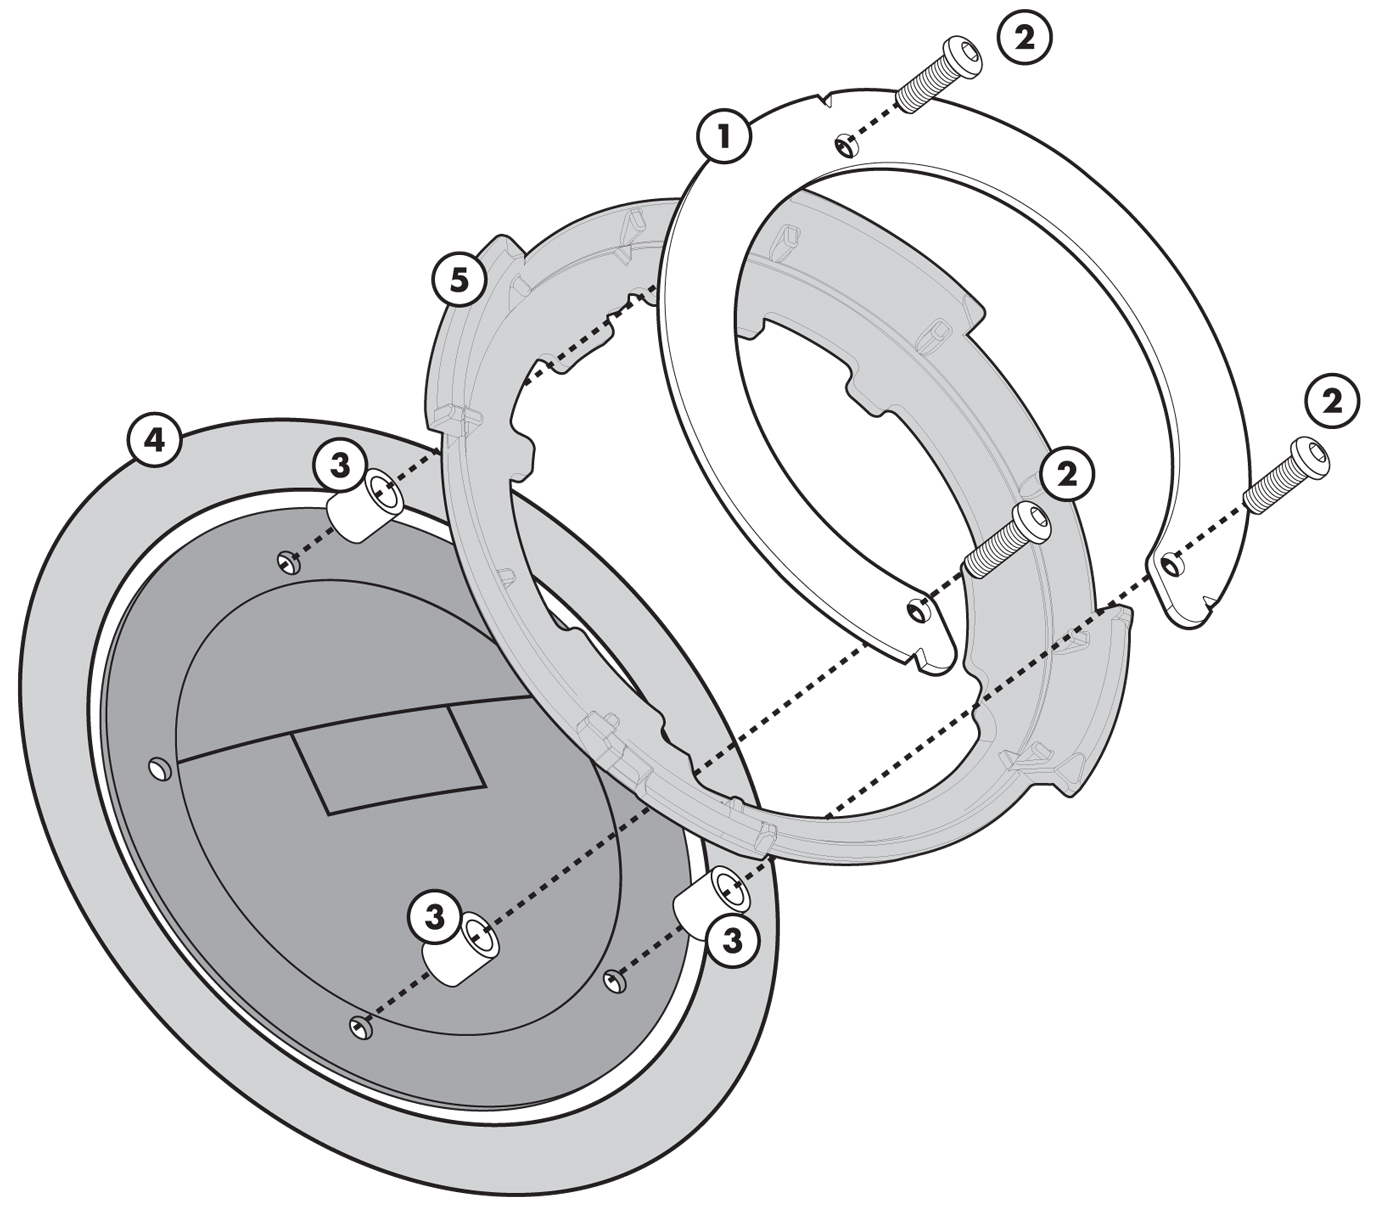 Givi Tank Bag Flange Bf08 Ducati S4 Wiring Diagram Tanklock Fuel For Monster S2r S4r Rs 1000 St2 St4 848 1098 1198 821 1200